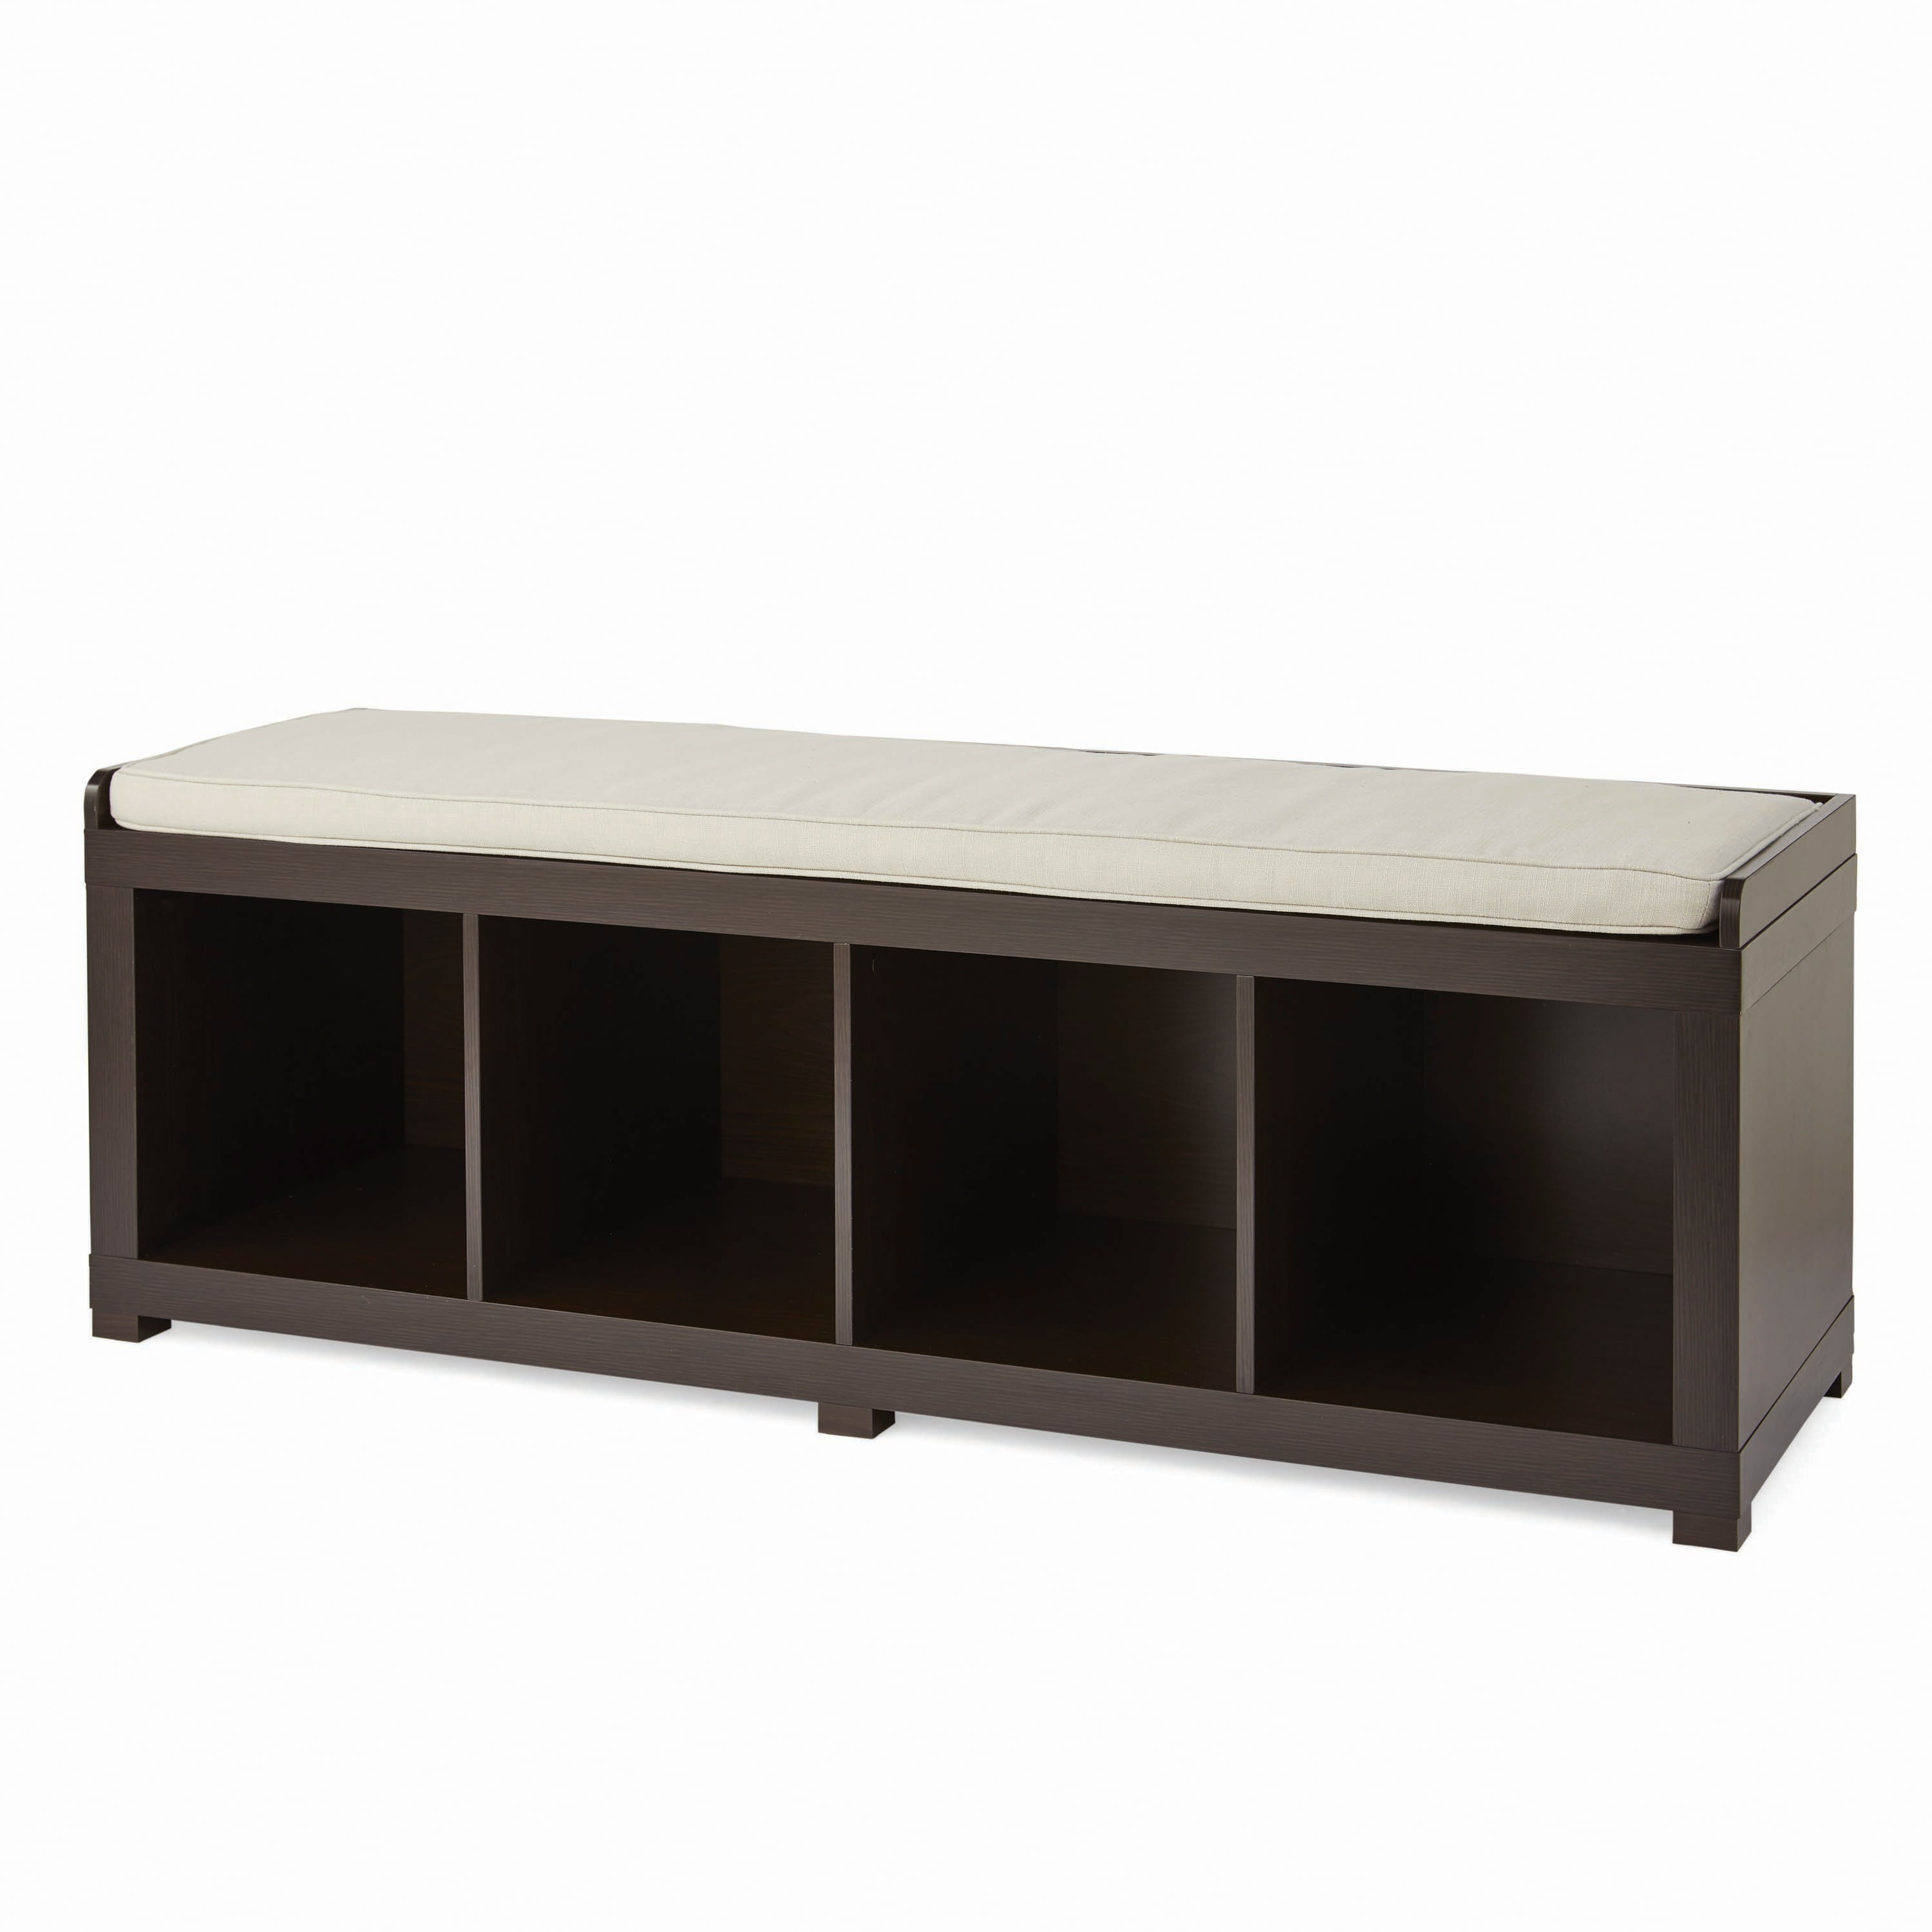 unit blue table seat ideas best cube containers playroom duplo size storage full two bench expedit lego ikea kids